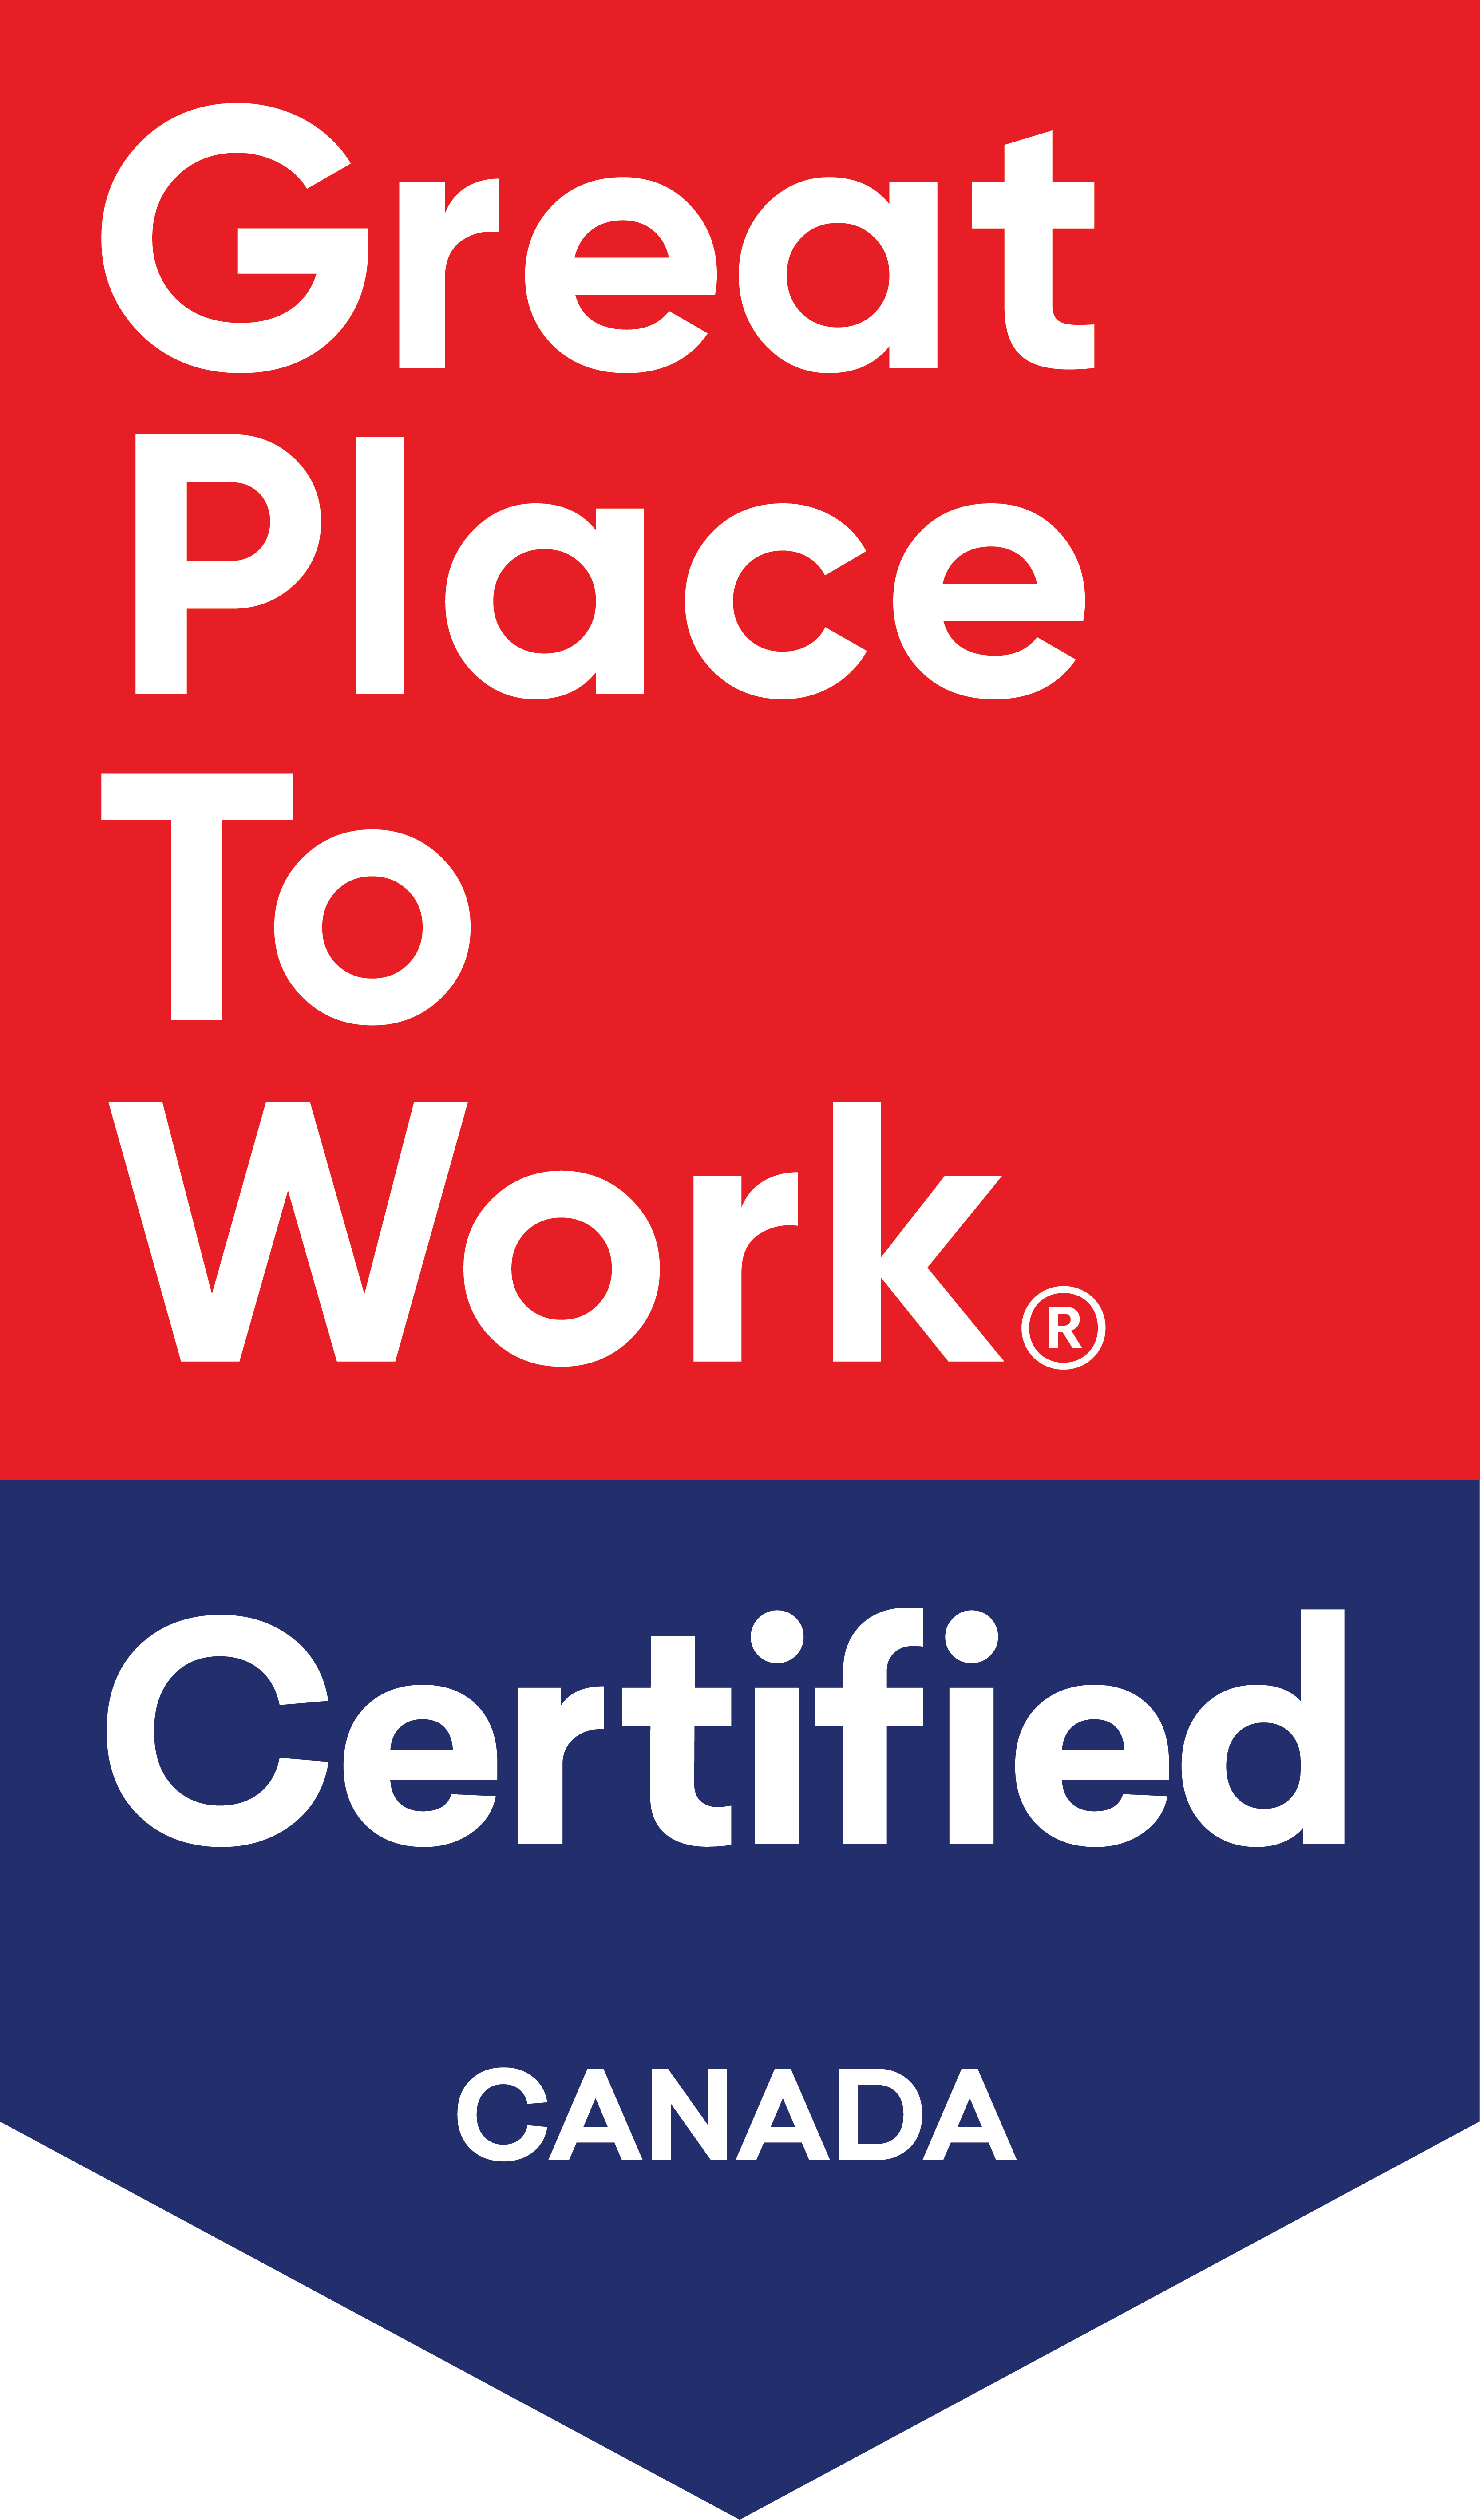 Certification logo English